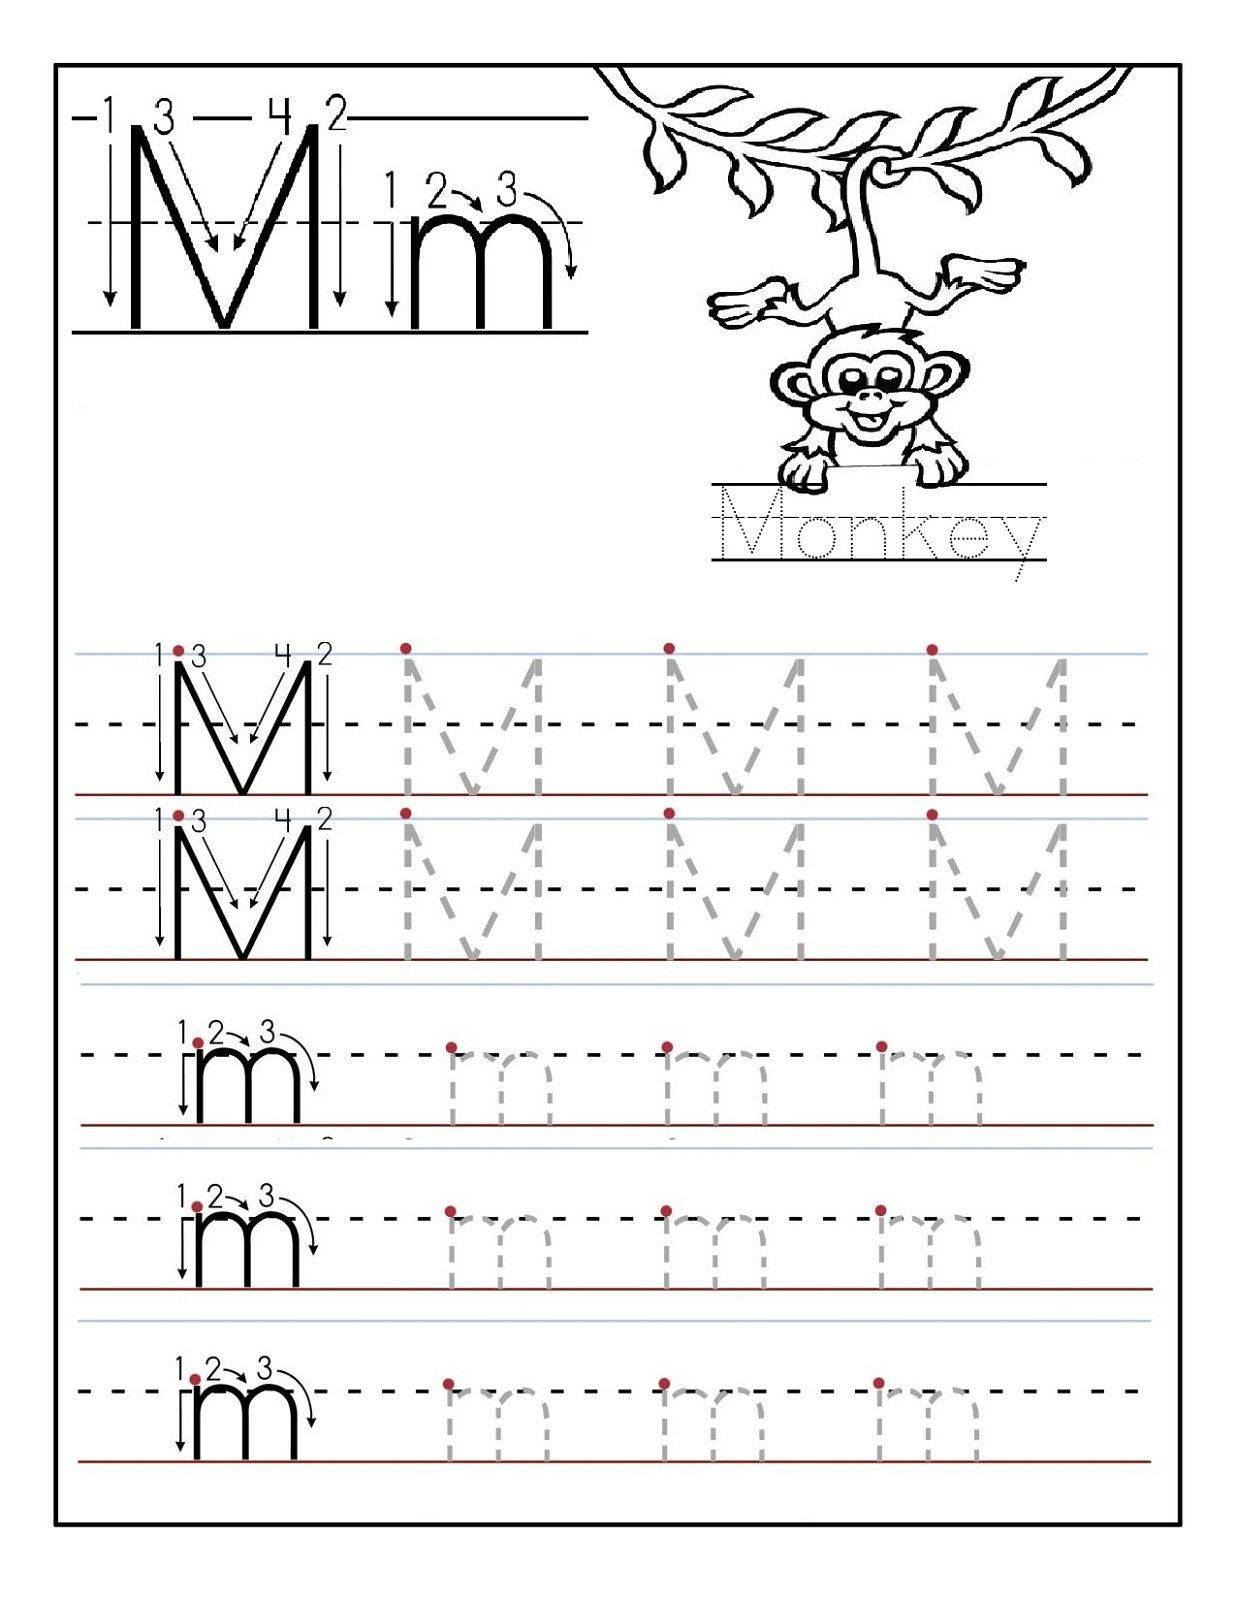 Preschool Letter N Worksheets 2 Preschool Letter N Tracing Worksheets In 2020